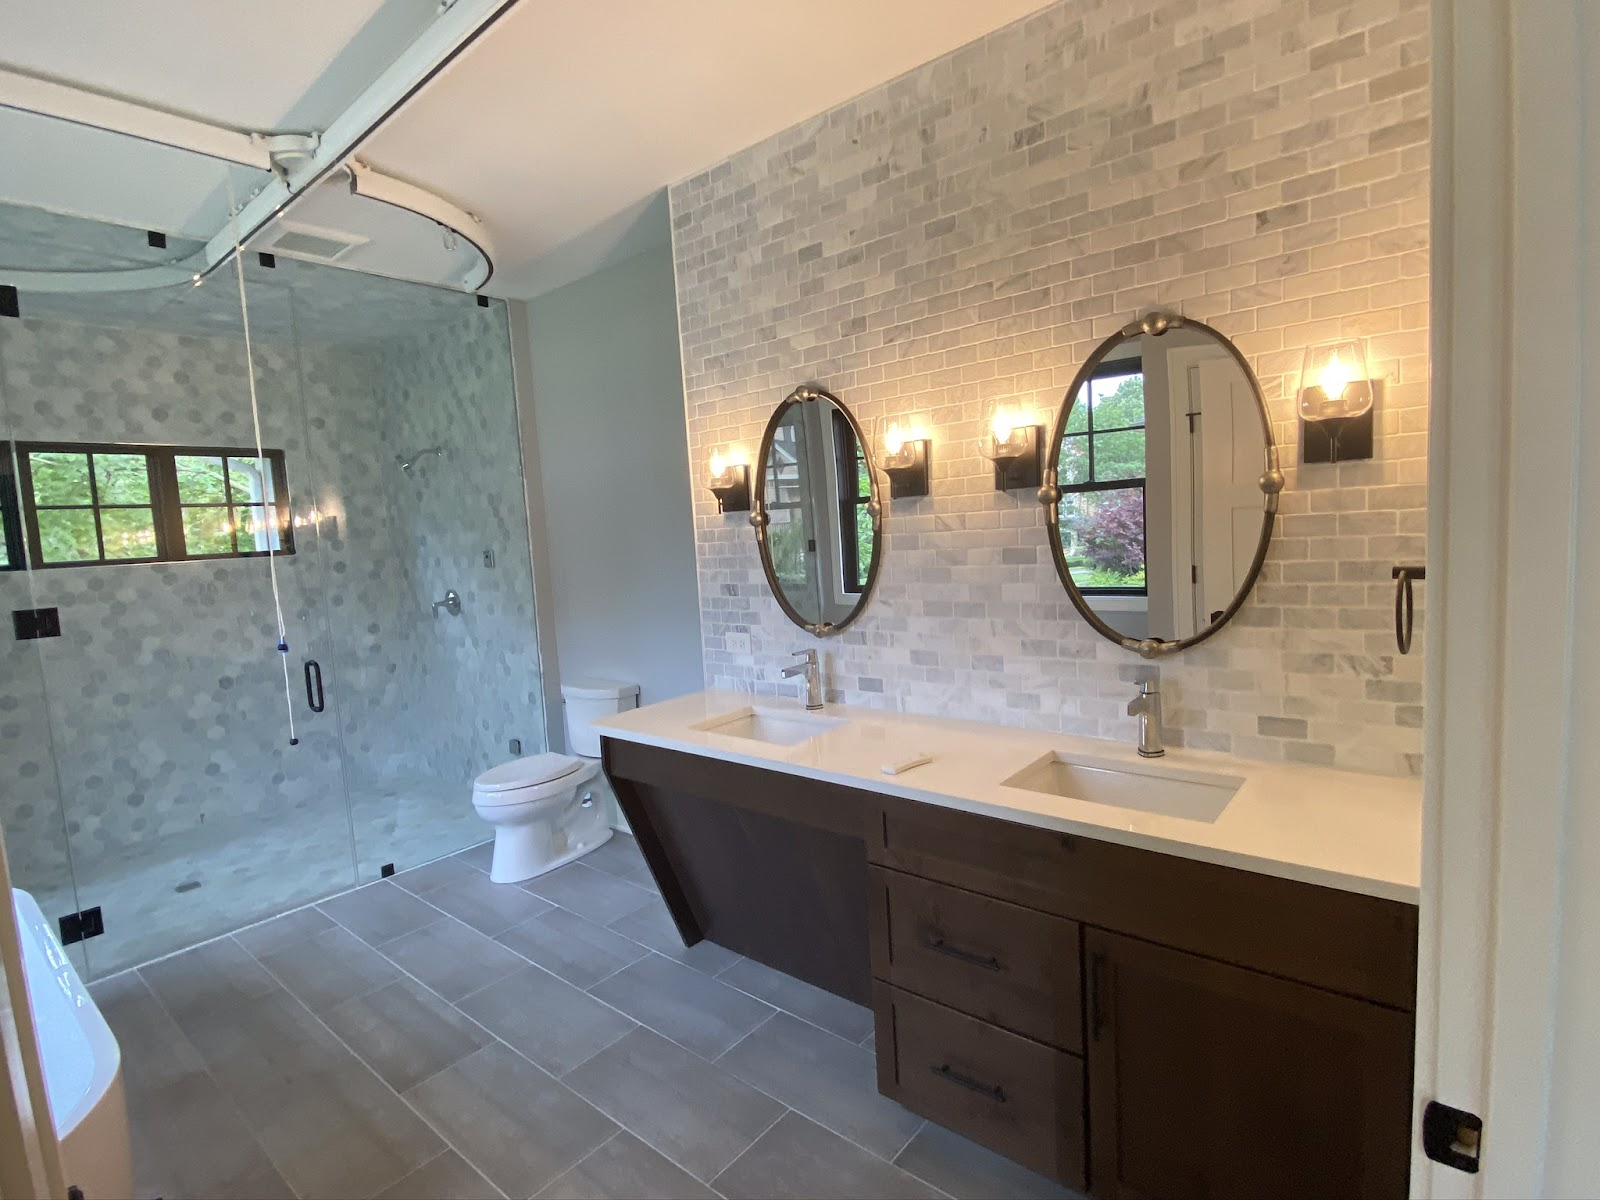 Barrier-free bath with pulley track and wheel chair accessible vanity